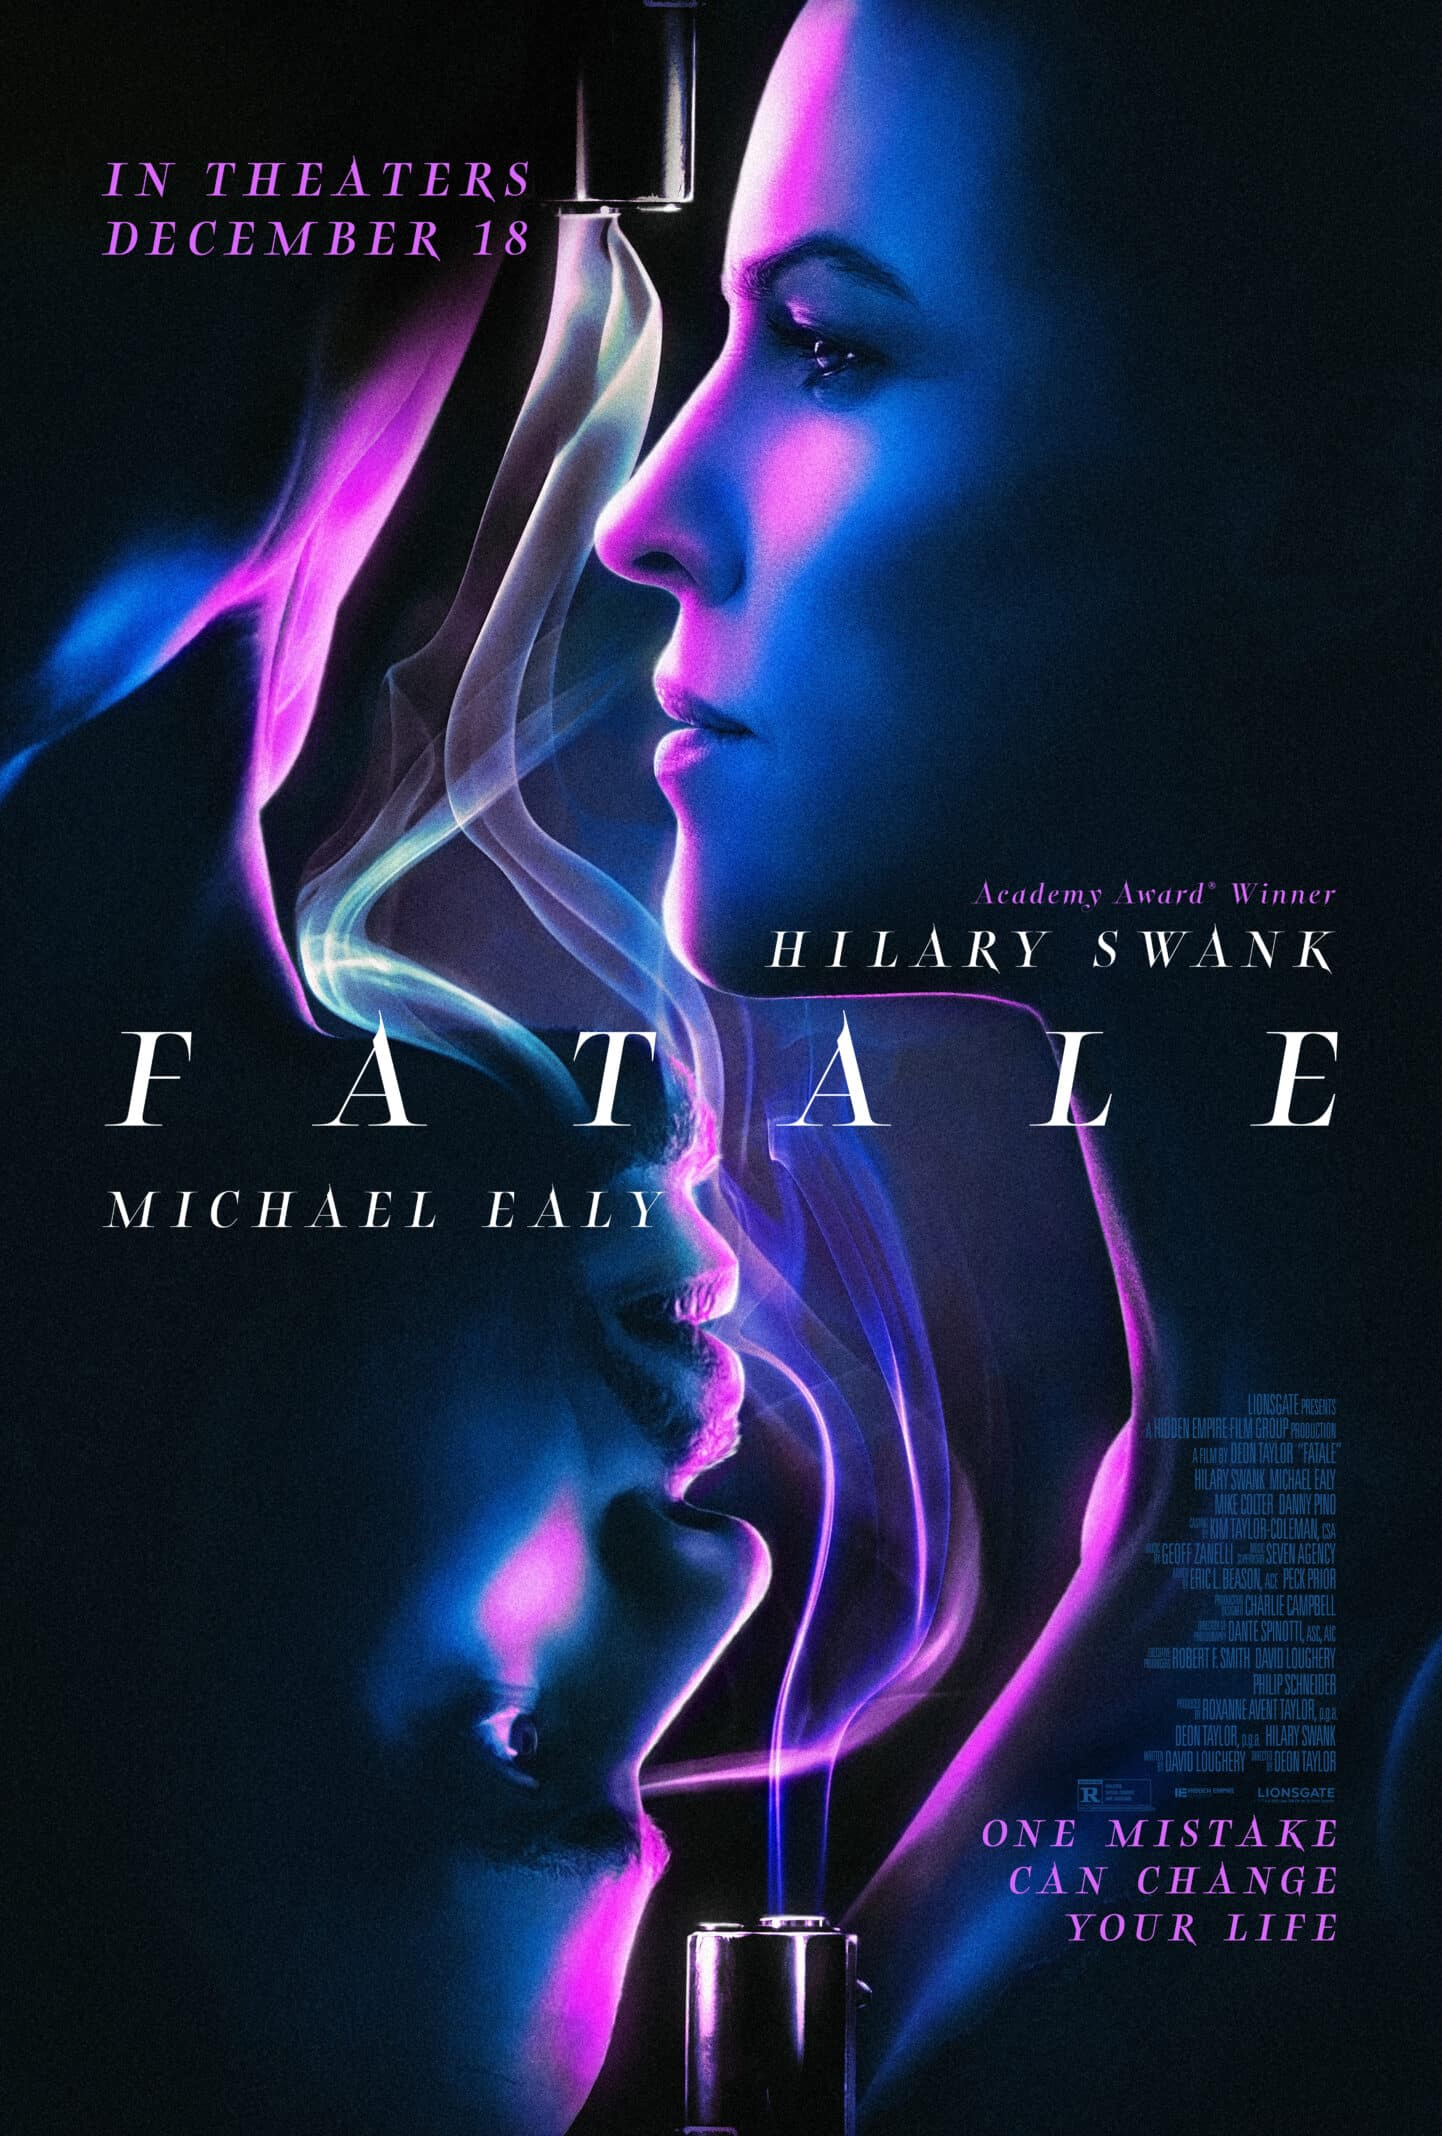 Movie Poster - Fatale (2020)